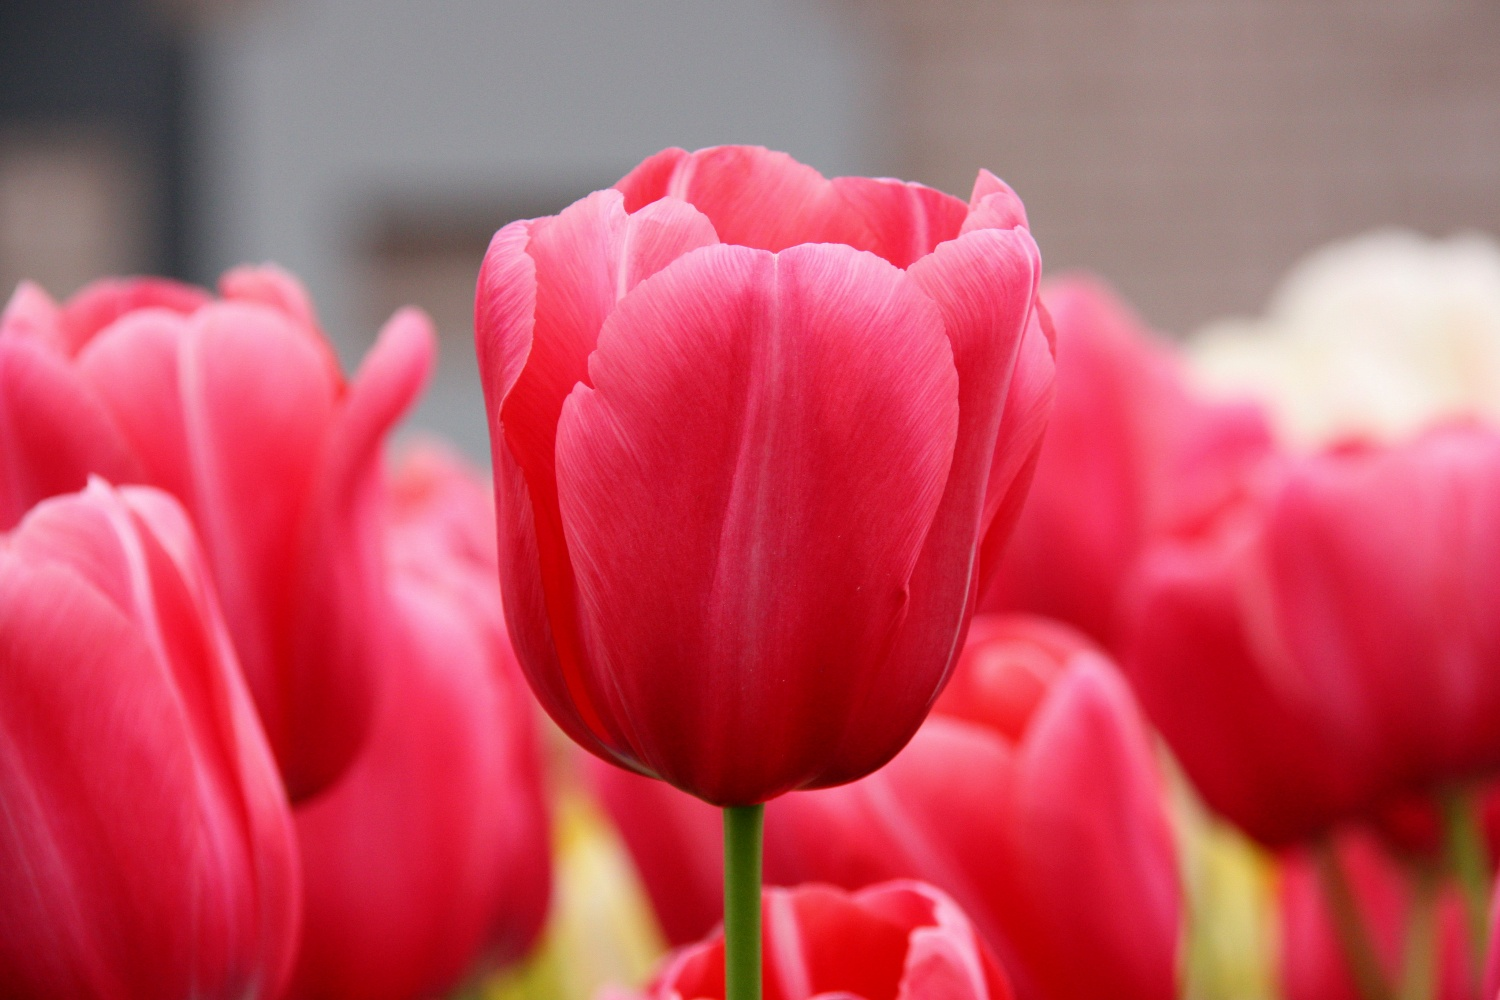 http://upload.wikimedia.org/wikipedia/commons/1/1b/Pink-Tulips-2009.jpg